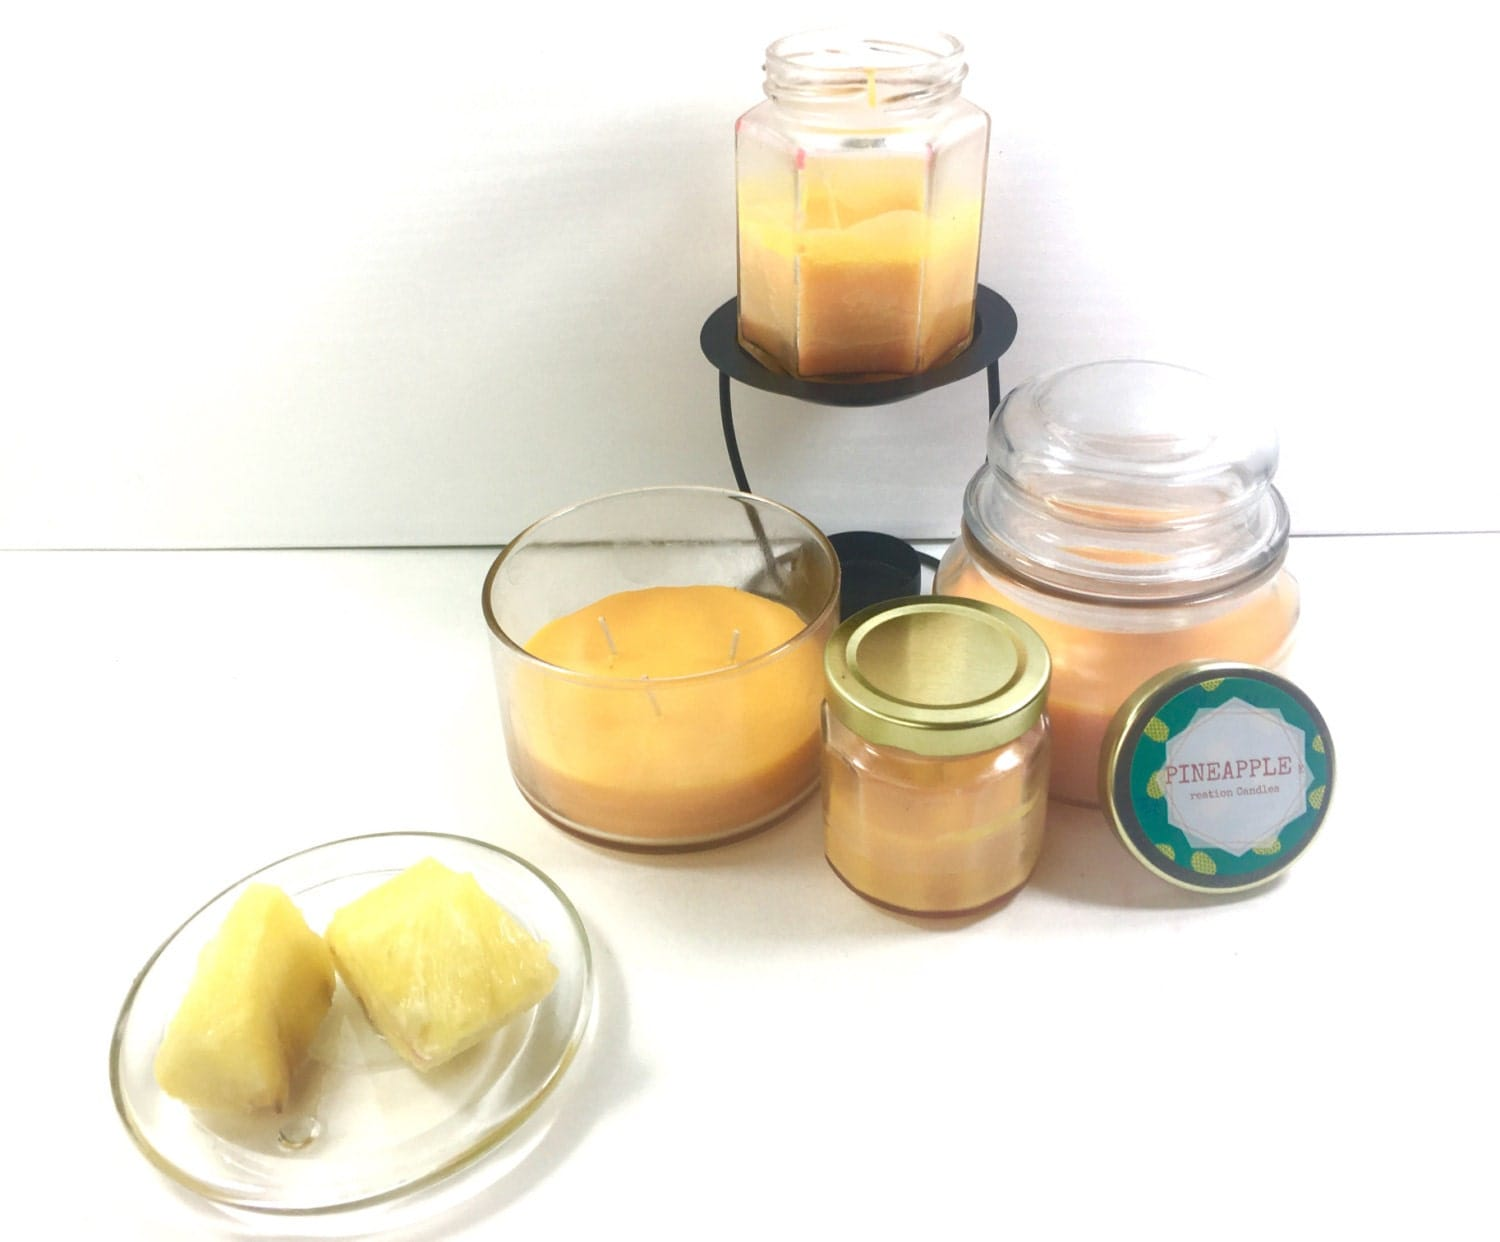 The Yankee Candle Beach Collection Coconut Beach Small Tumbler Candle is a limited-edition scent that transports you to the tropics. With notes of coconut, pineapple, and vanilla, it's the next best thing to relaxing in a seaside hammock.